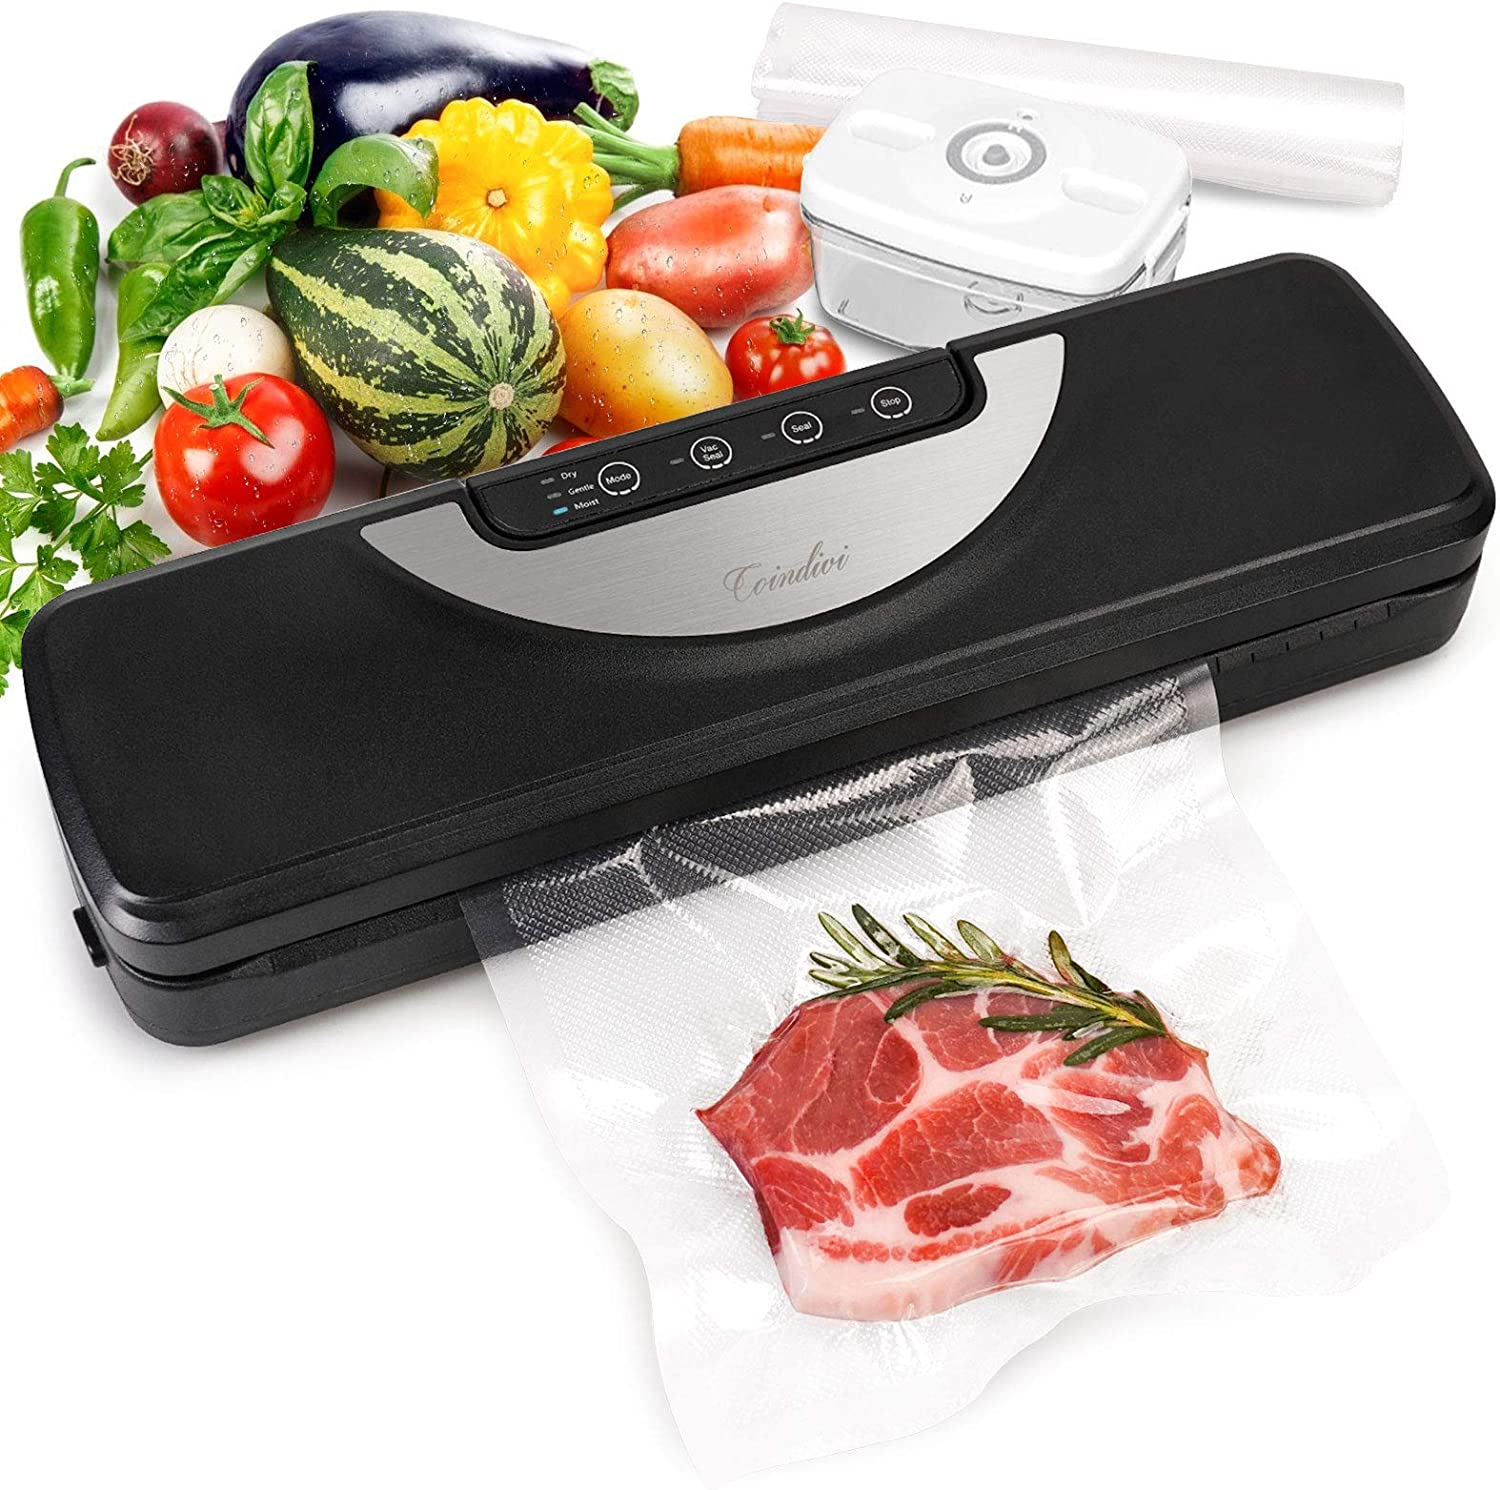 Vacuum Sealer Machine with Cutter & Bags, Automatic Food Meat Savers with Vac Pipe for Jar, Conindivi Air Sealing System Machine with Dry, Gentle, Moist Mode for Food Preservation, Led Touch Controls